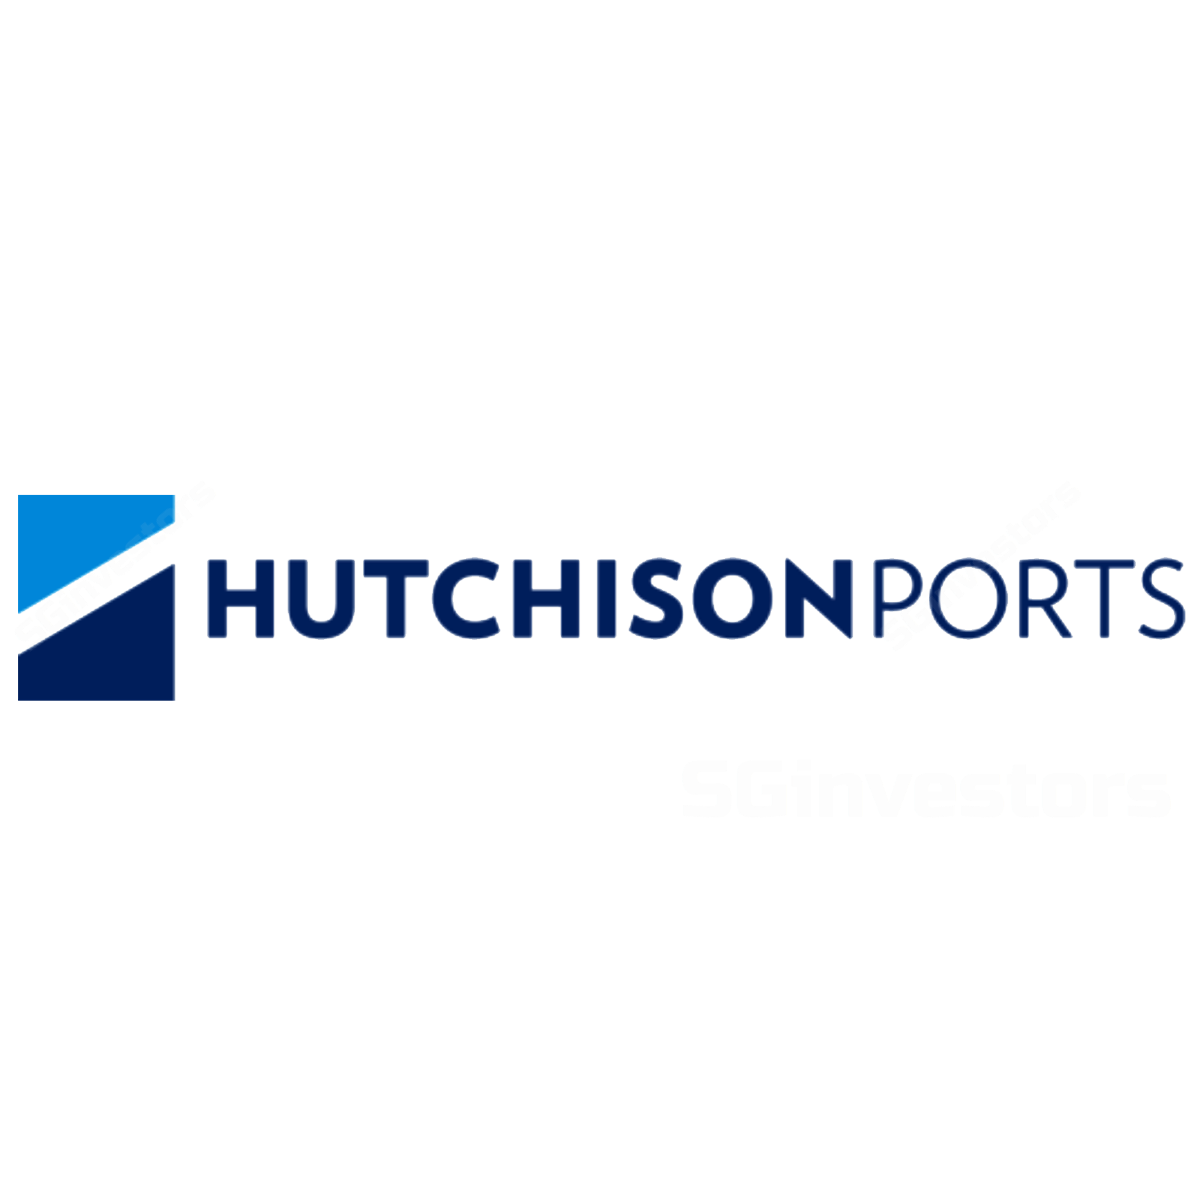 Hutchison Port Holdings Trust - DBS Vickers 2017-07-21: Lacklustre Earnings Lead DPU Cut